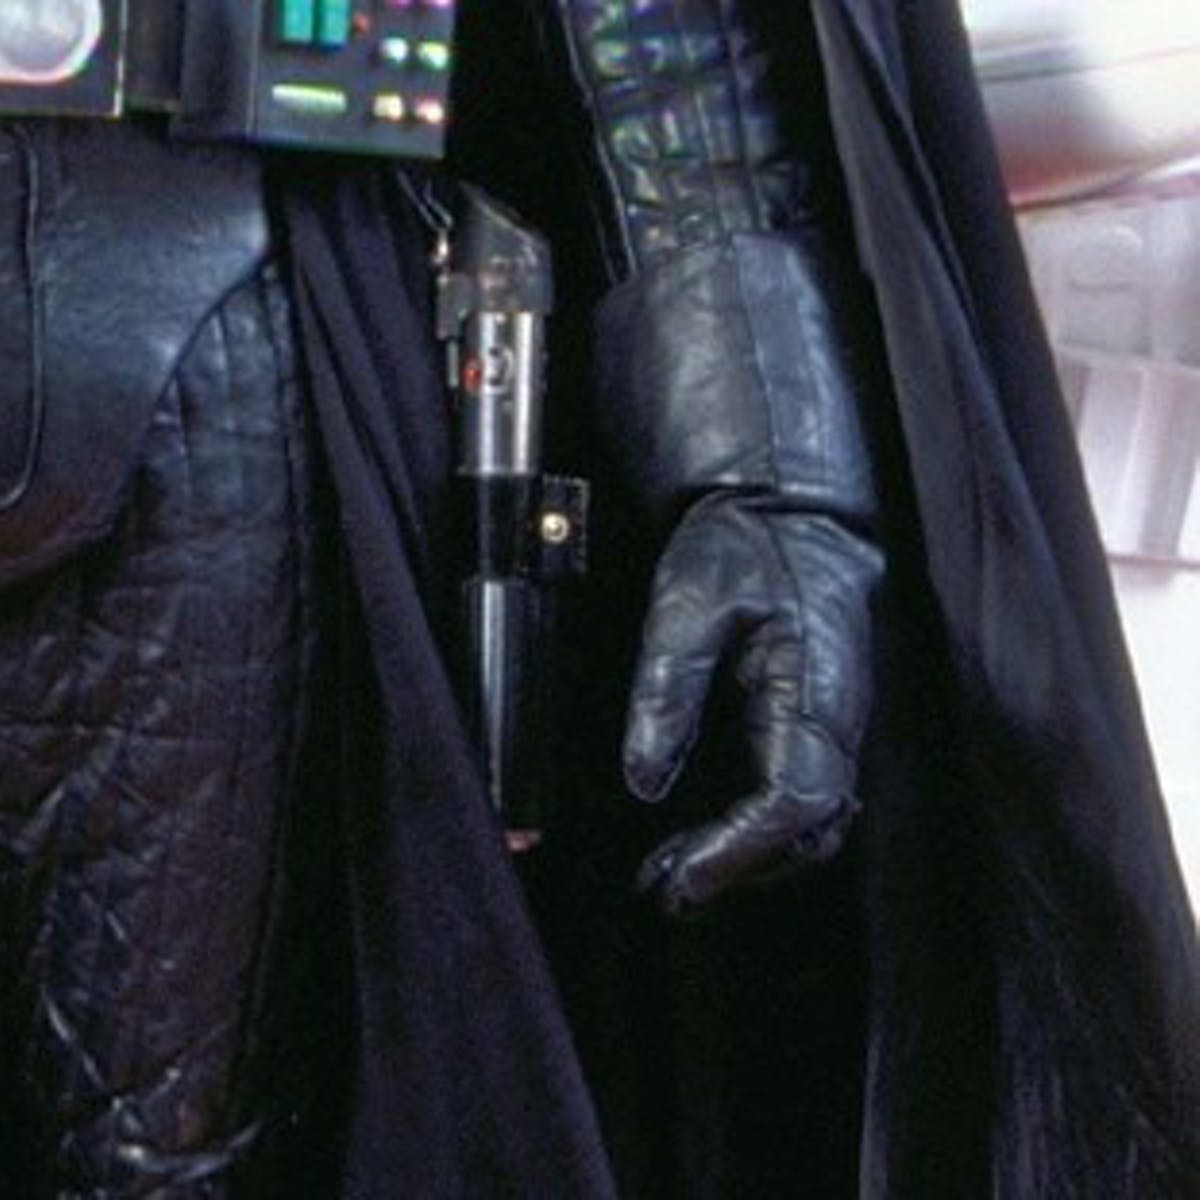 Does Darth Vader Still Have a Penis After 'Revenge of the